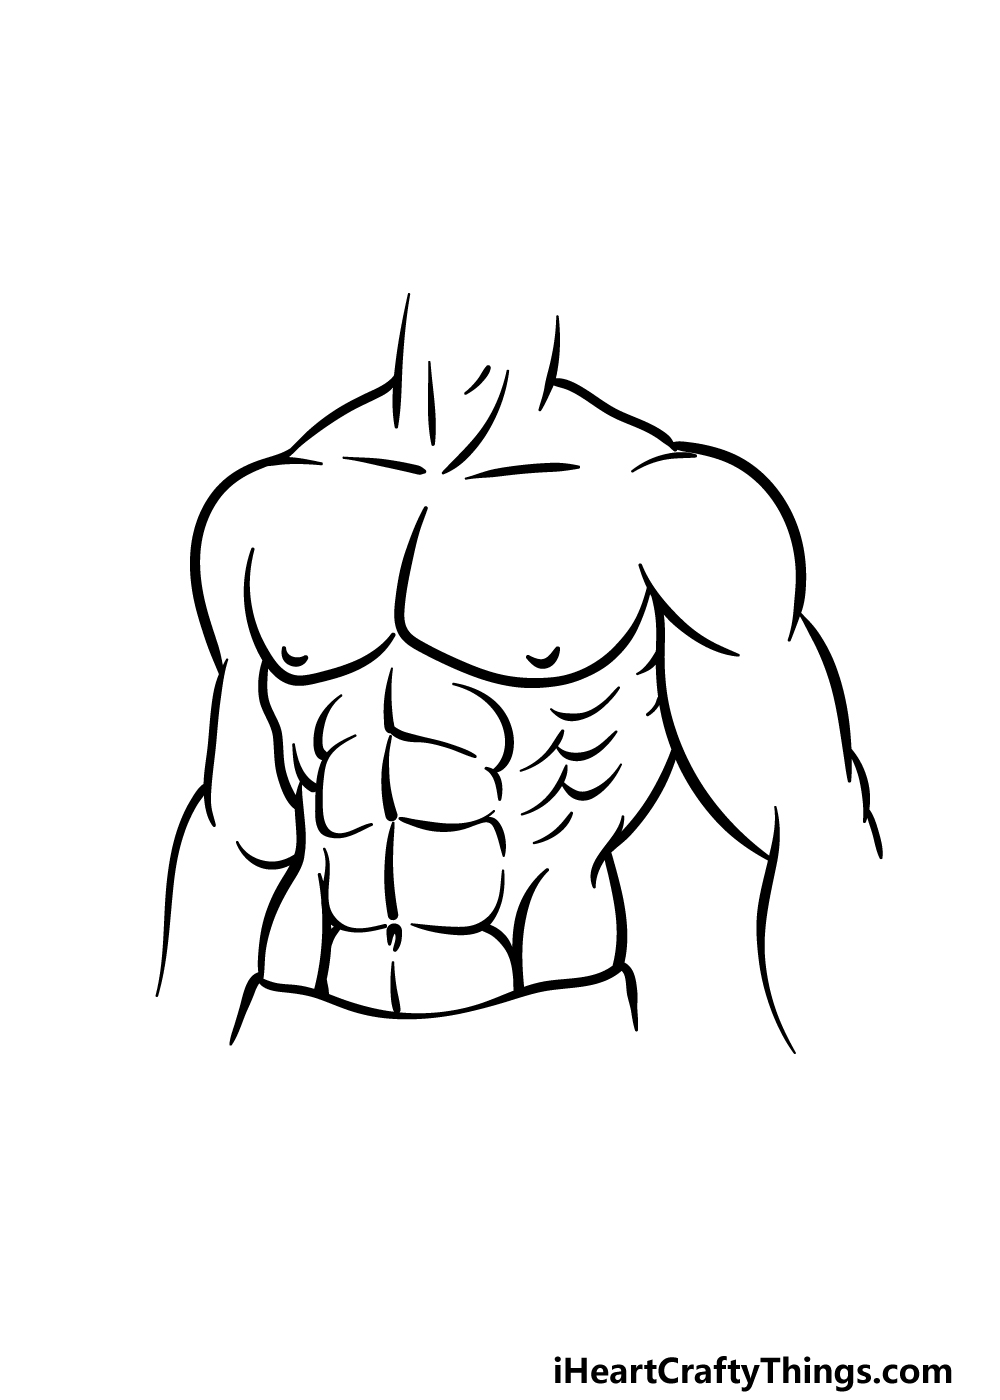 drawing abs step 5